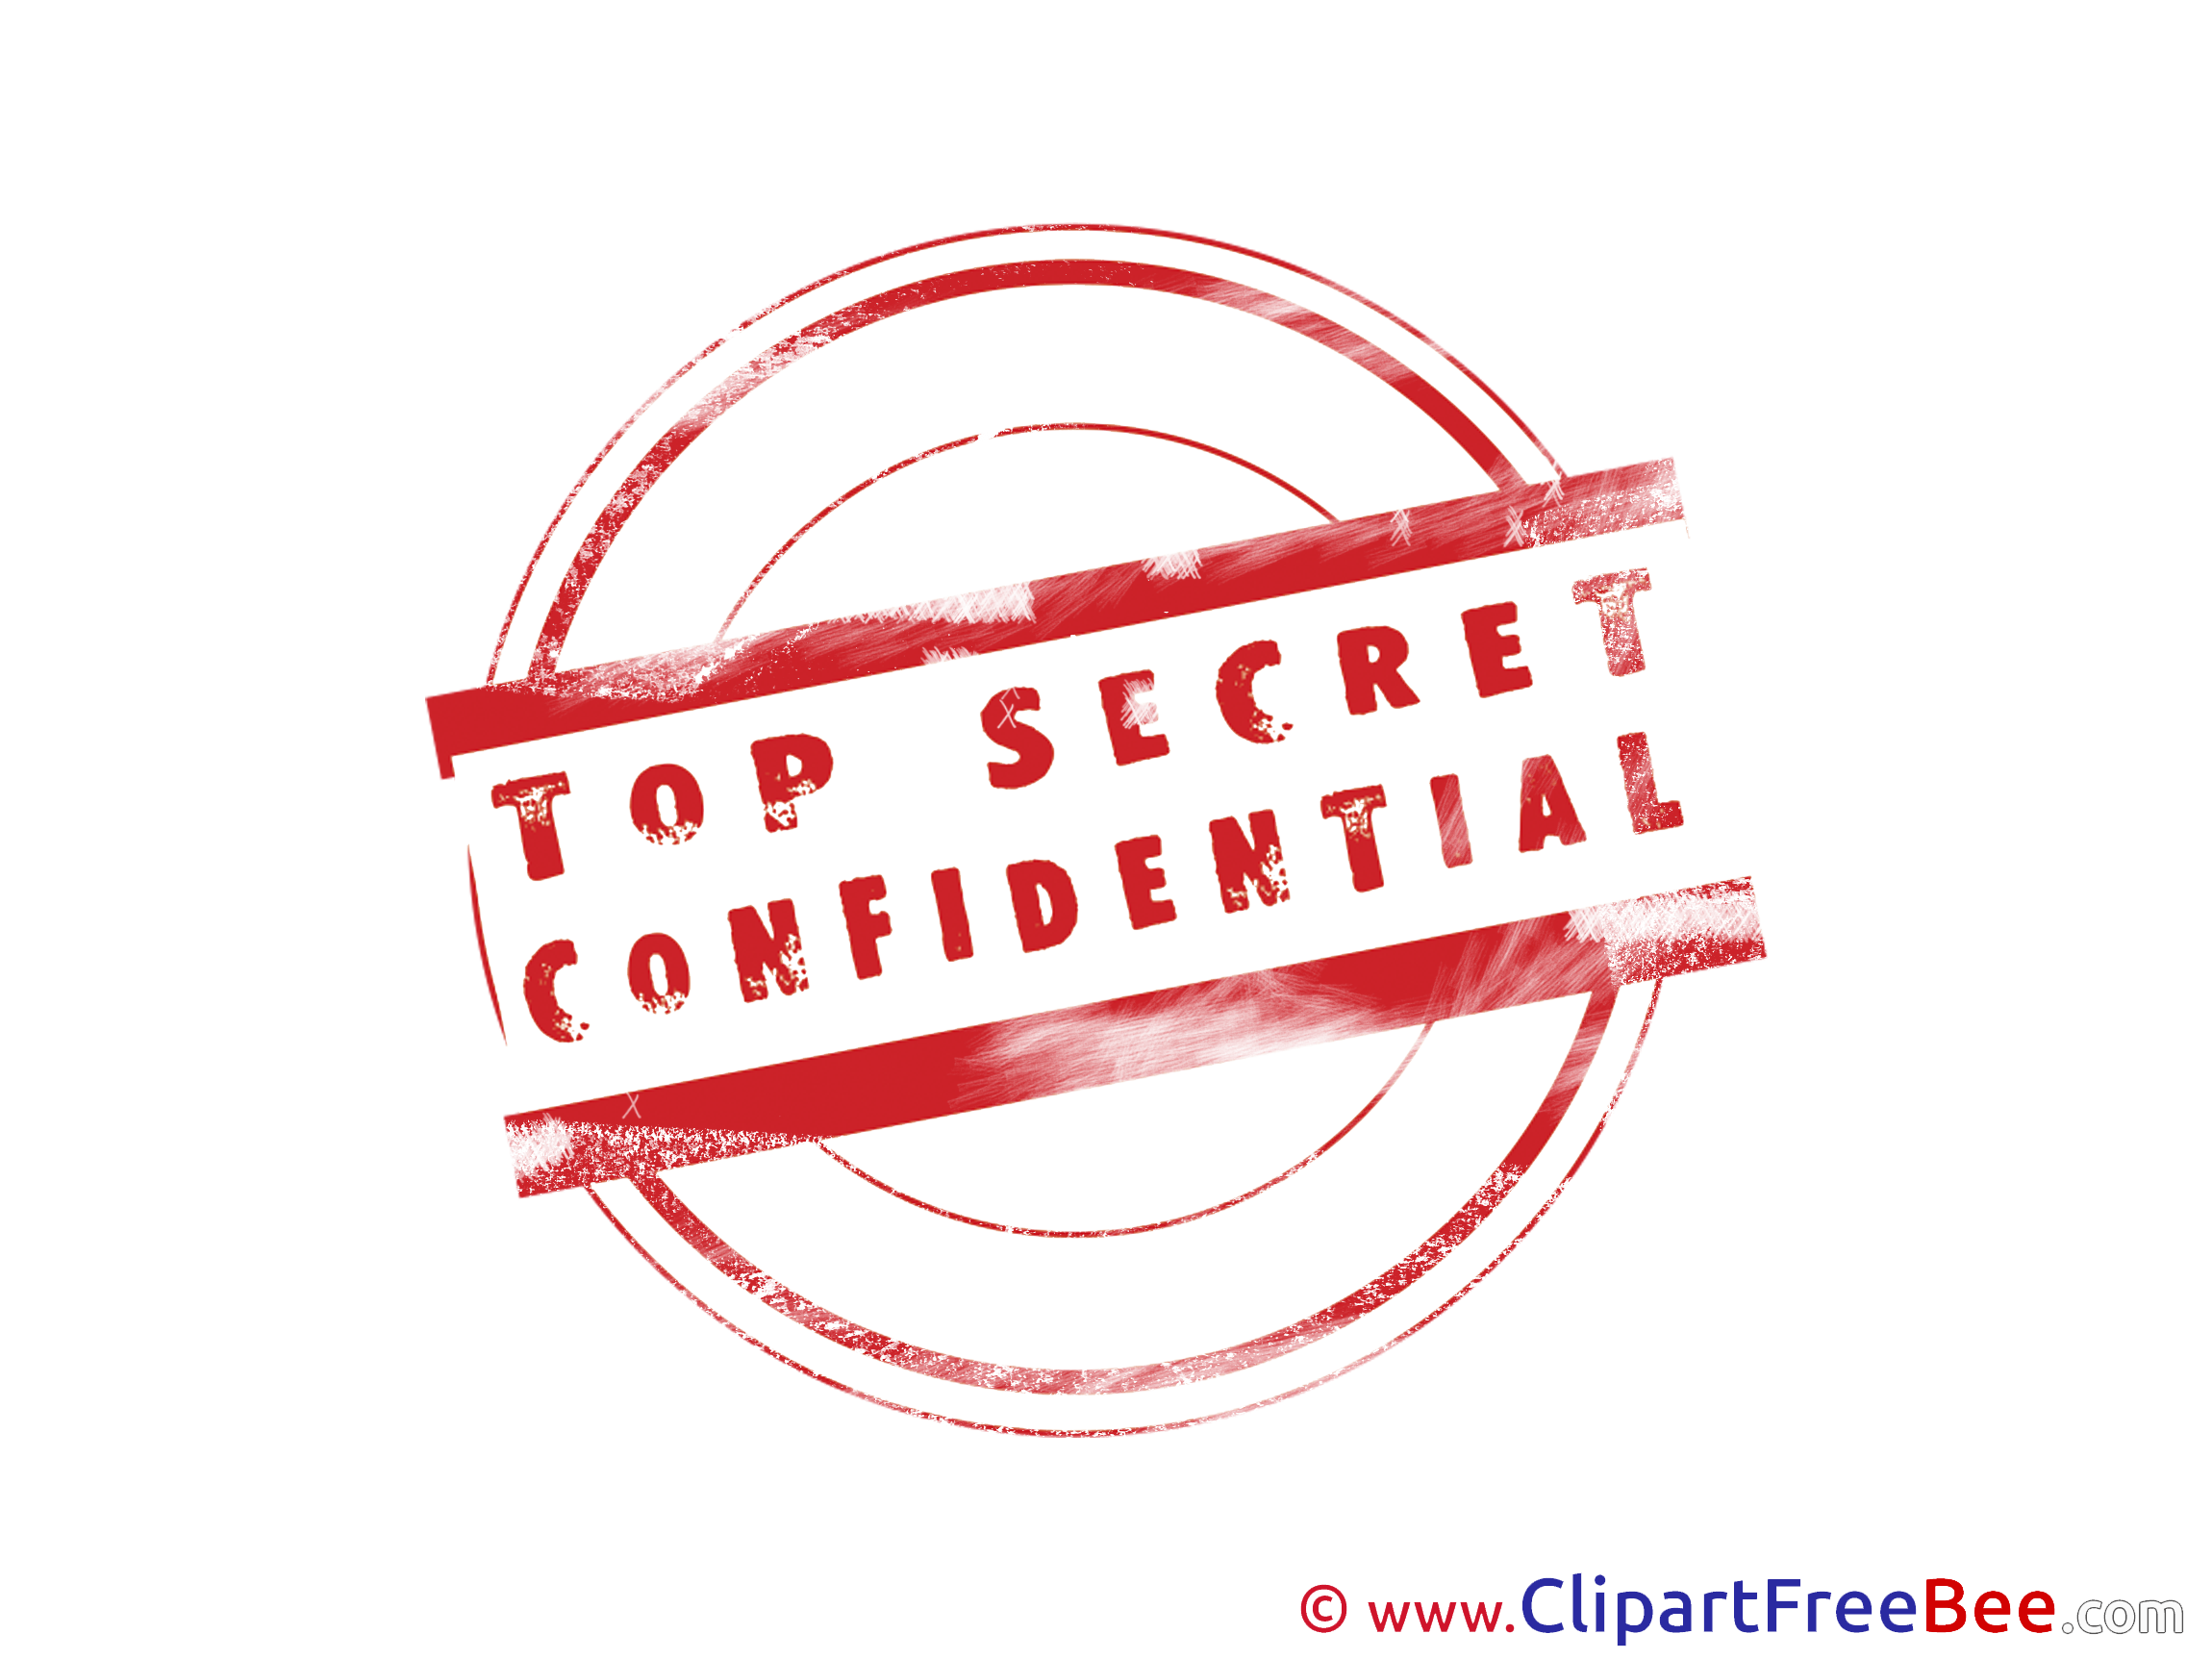 Confidential stamp png. Free illustration